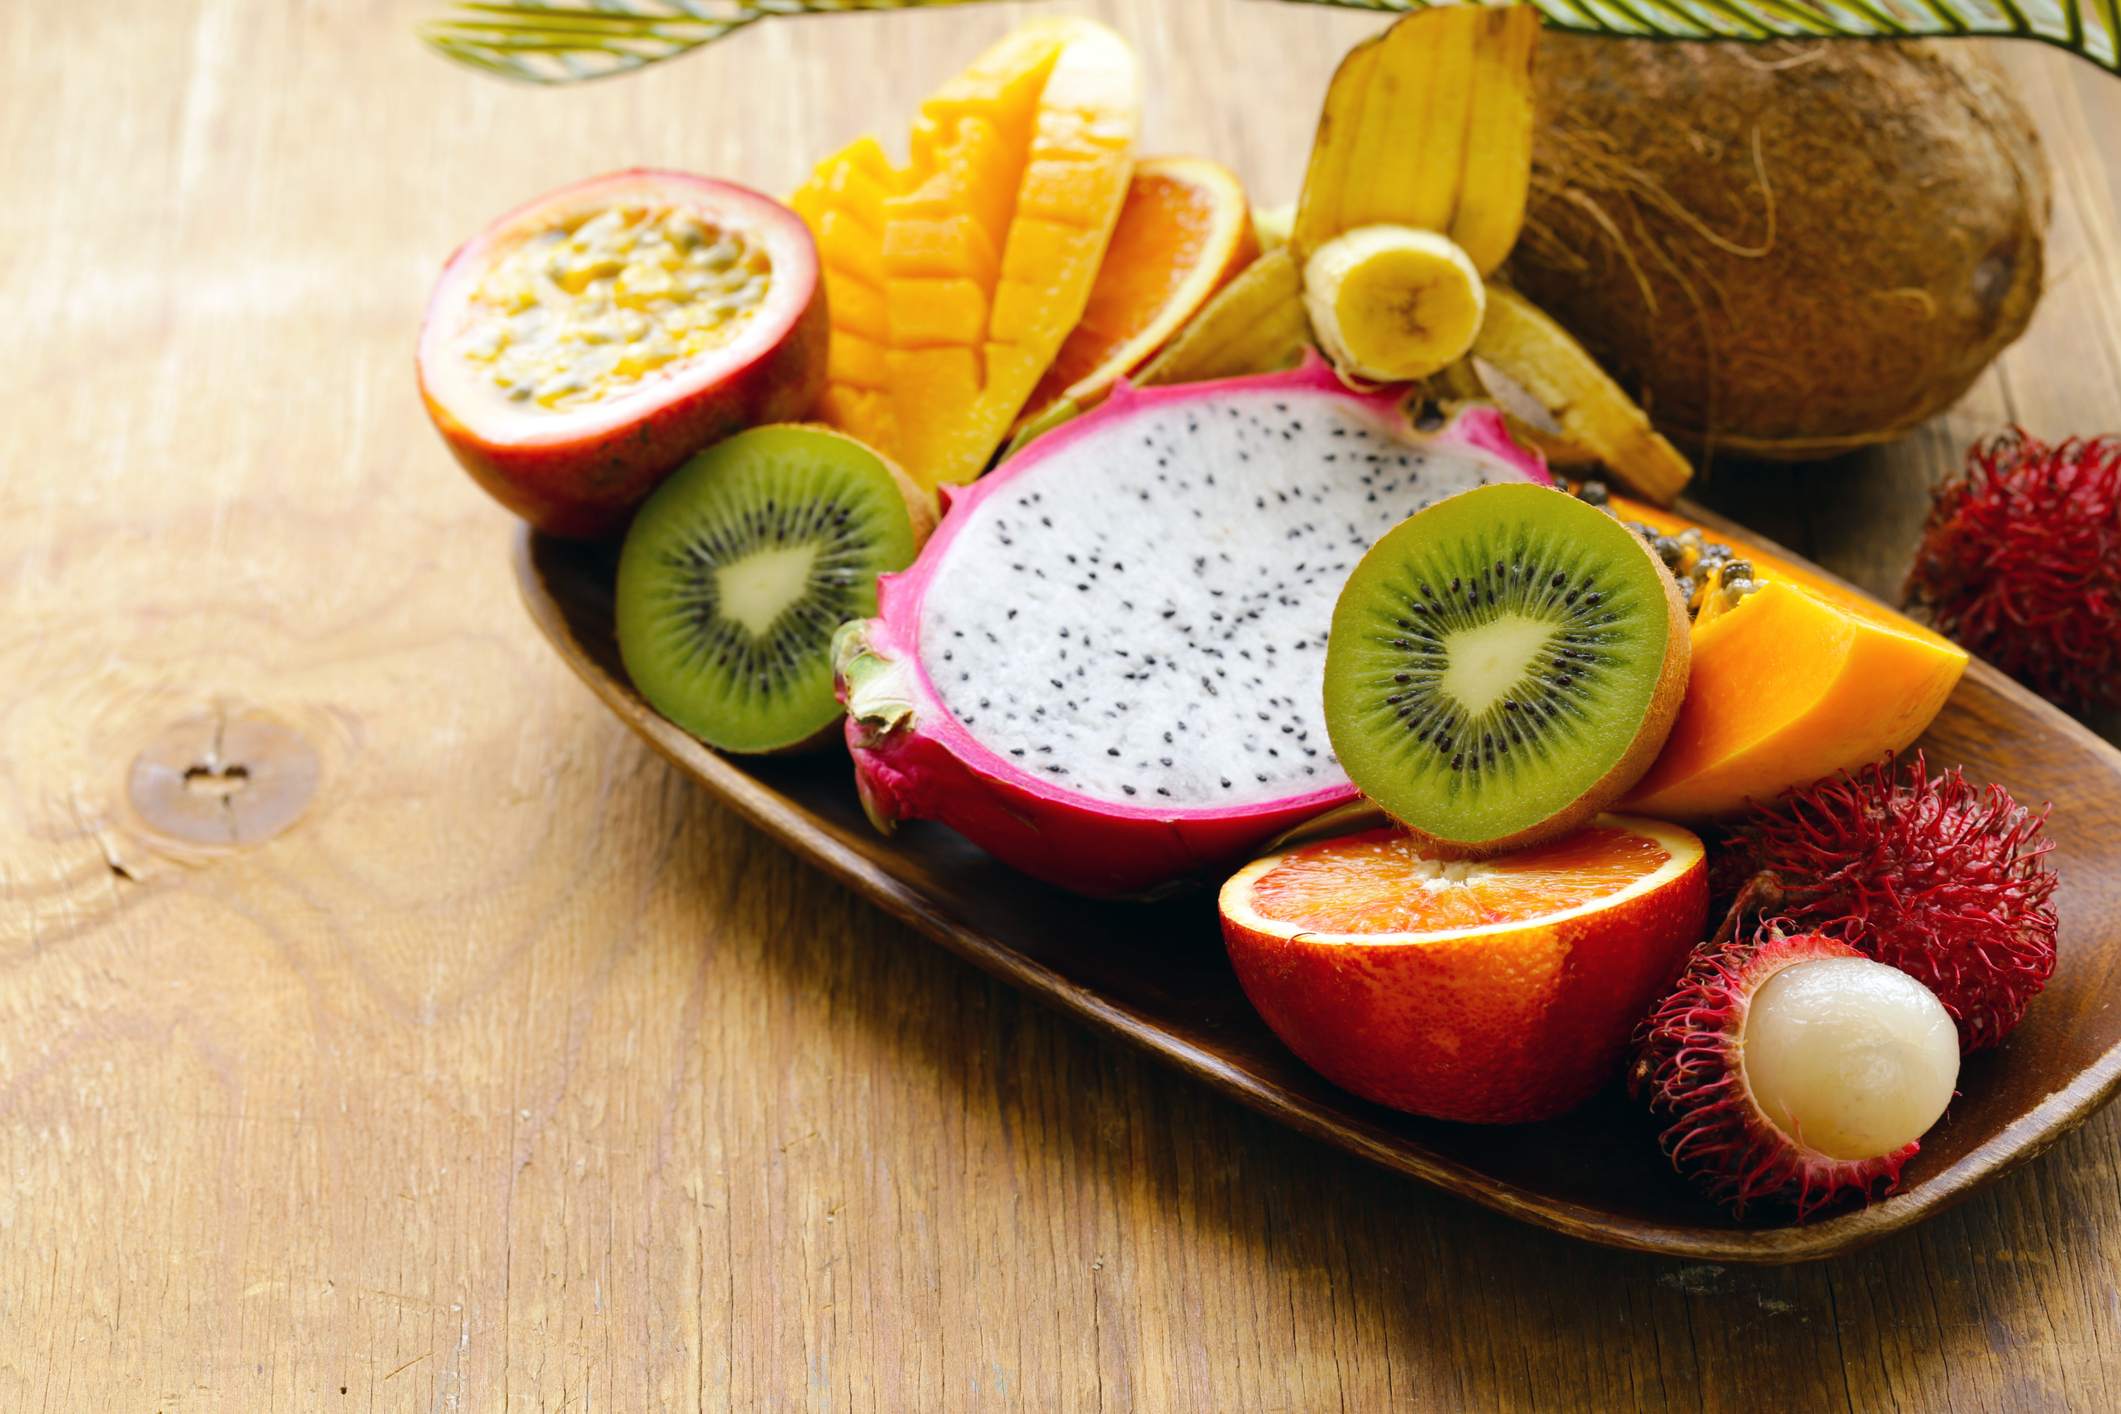 Natsubate: How To Deal With Summer Fatigue In Japan - fresh tropical fruits